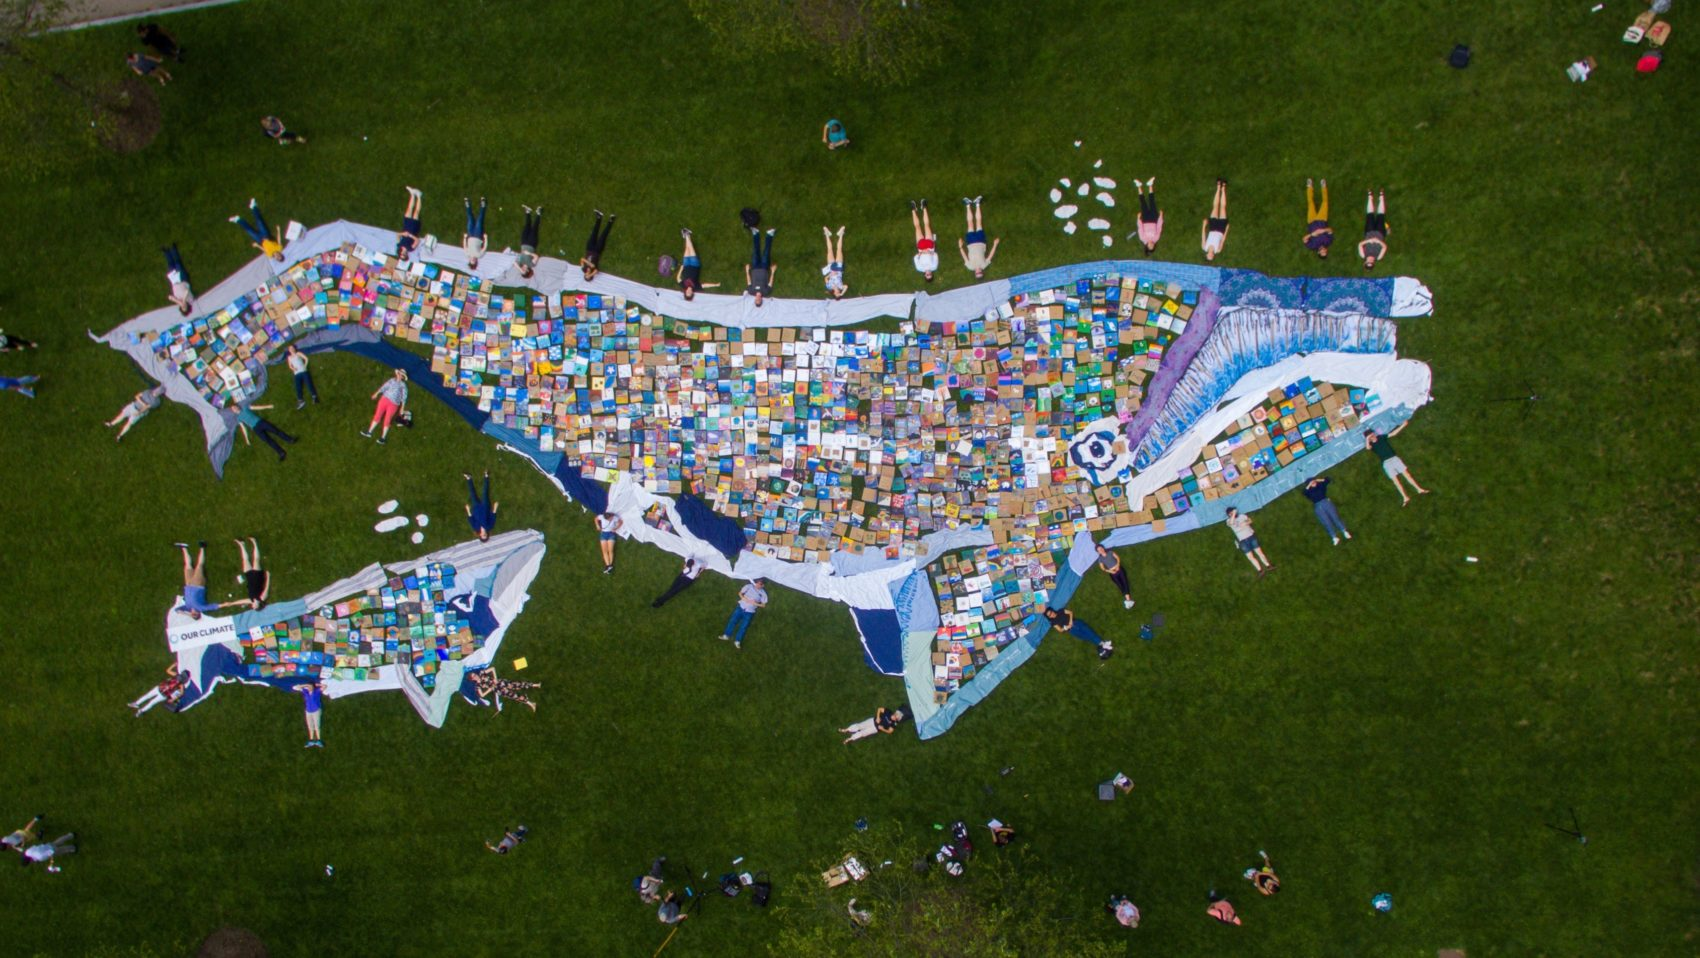 Young climate activists constructed a 100-foot mosaic out of 1,200 individually painted tiles. (Courtesy of Lucian Sharpe/Our Climate)